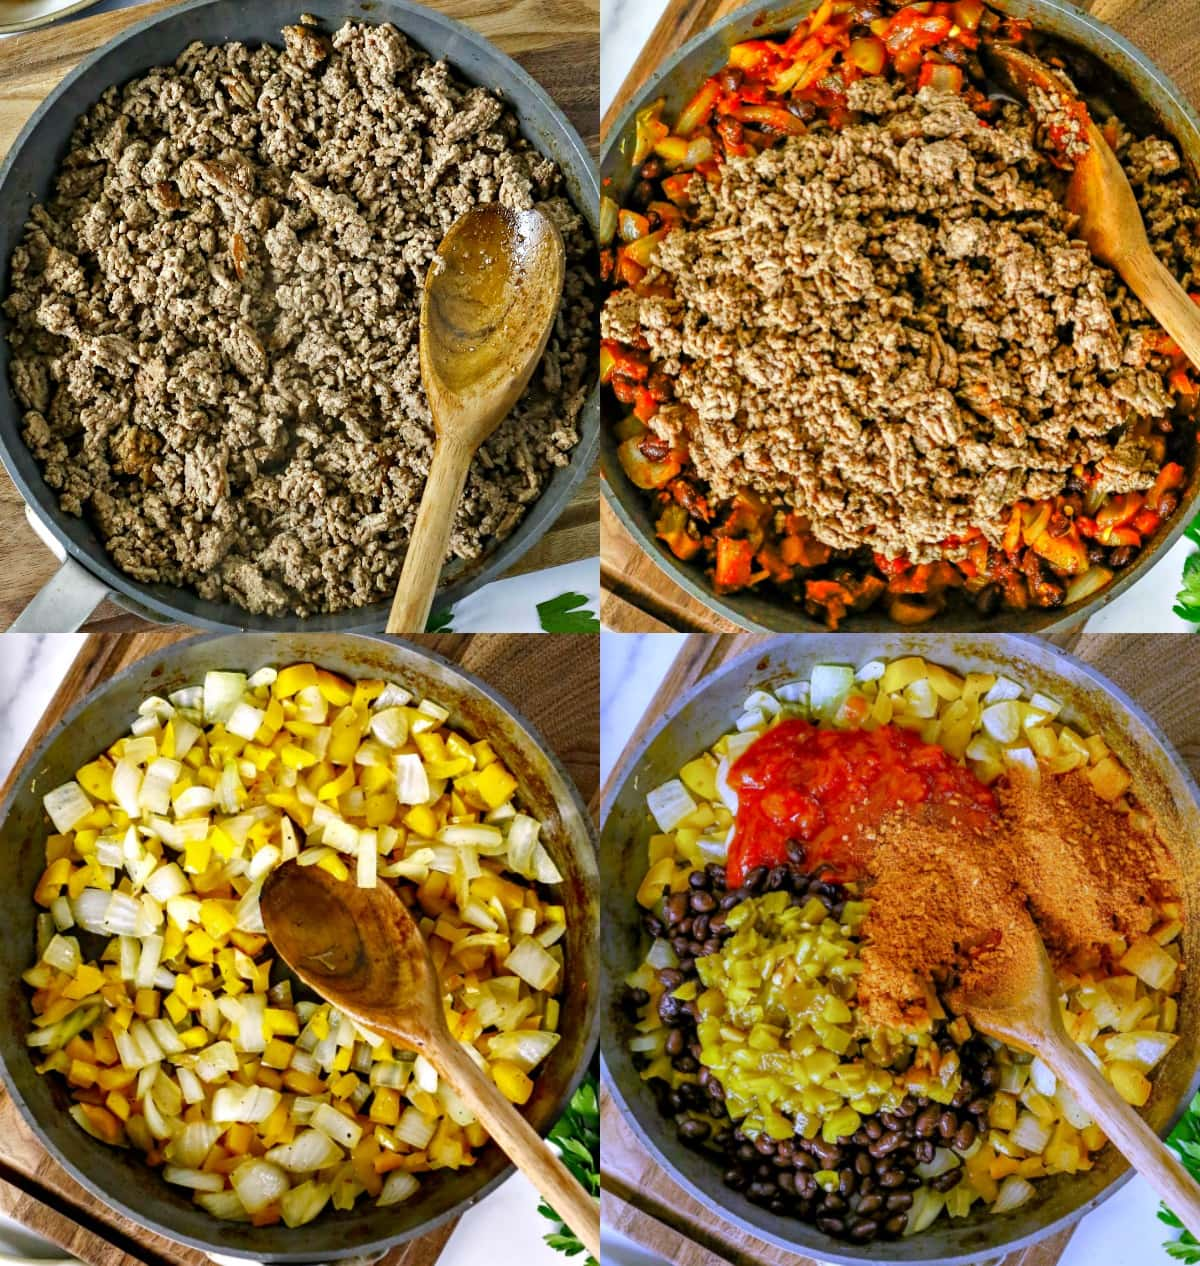 4 image collage of process of cooking ingredients in skillet for casserole